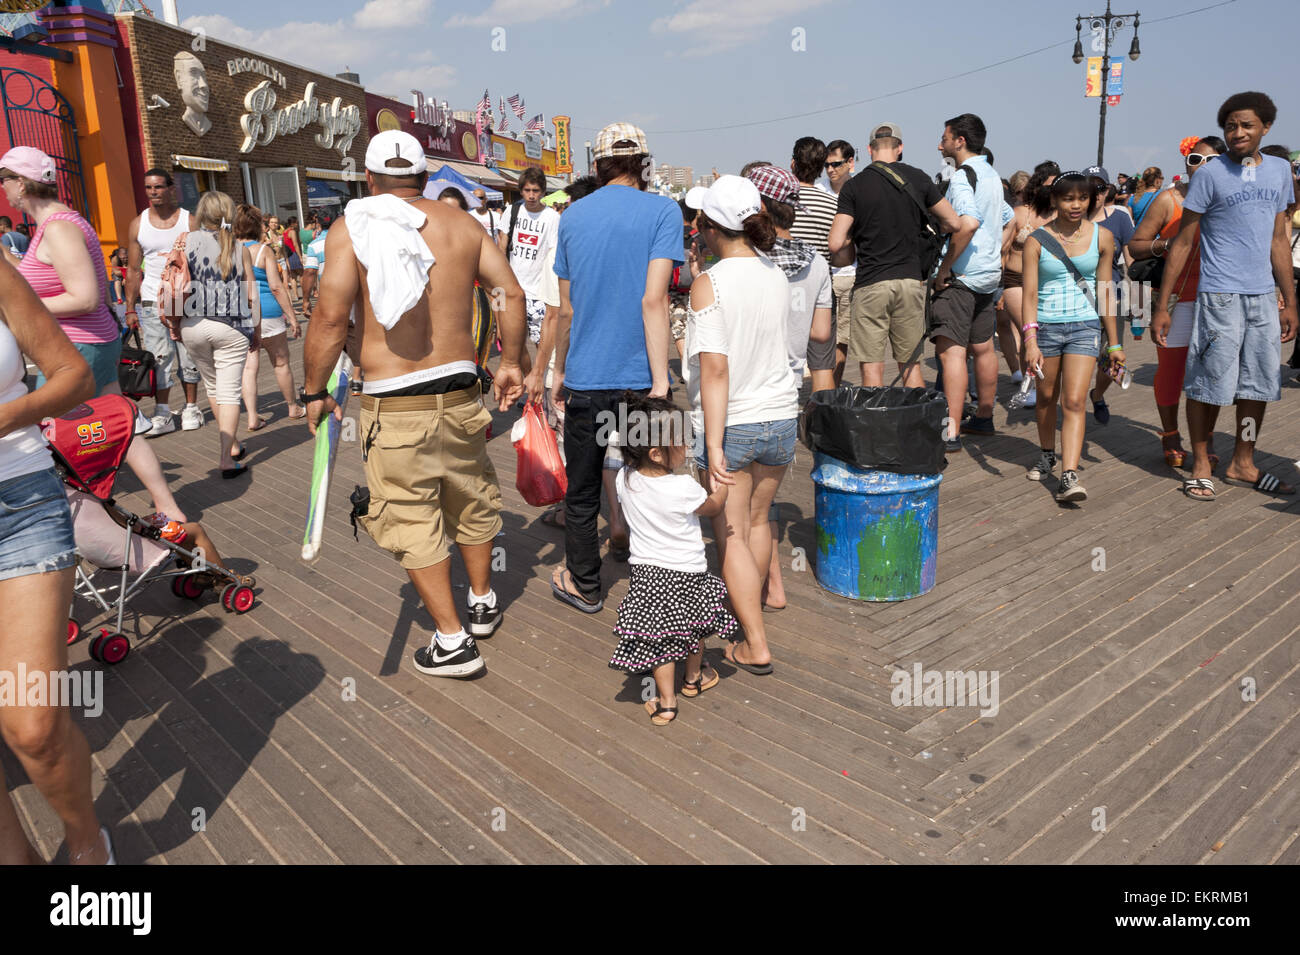 Crowds line the boardwalk at Coney Island in Brooklyn, NY on the 4th of July, 2012 during  the second heat wave - Stock Image